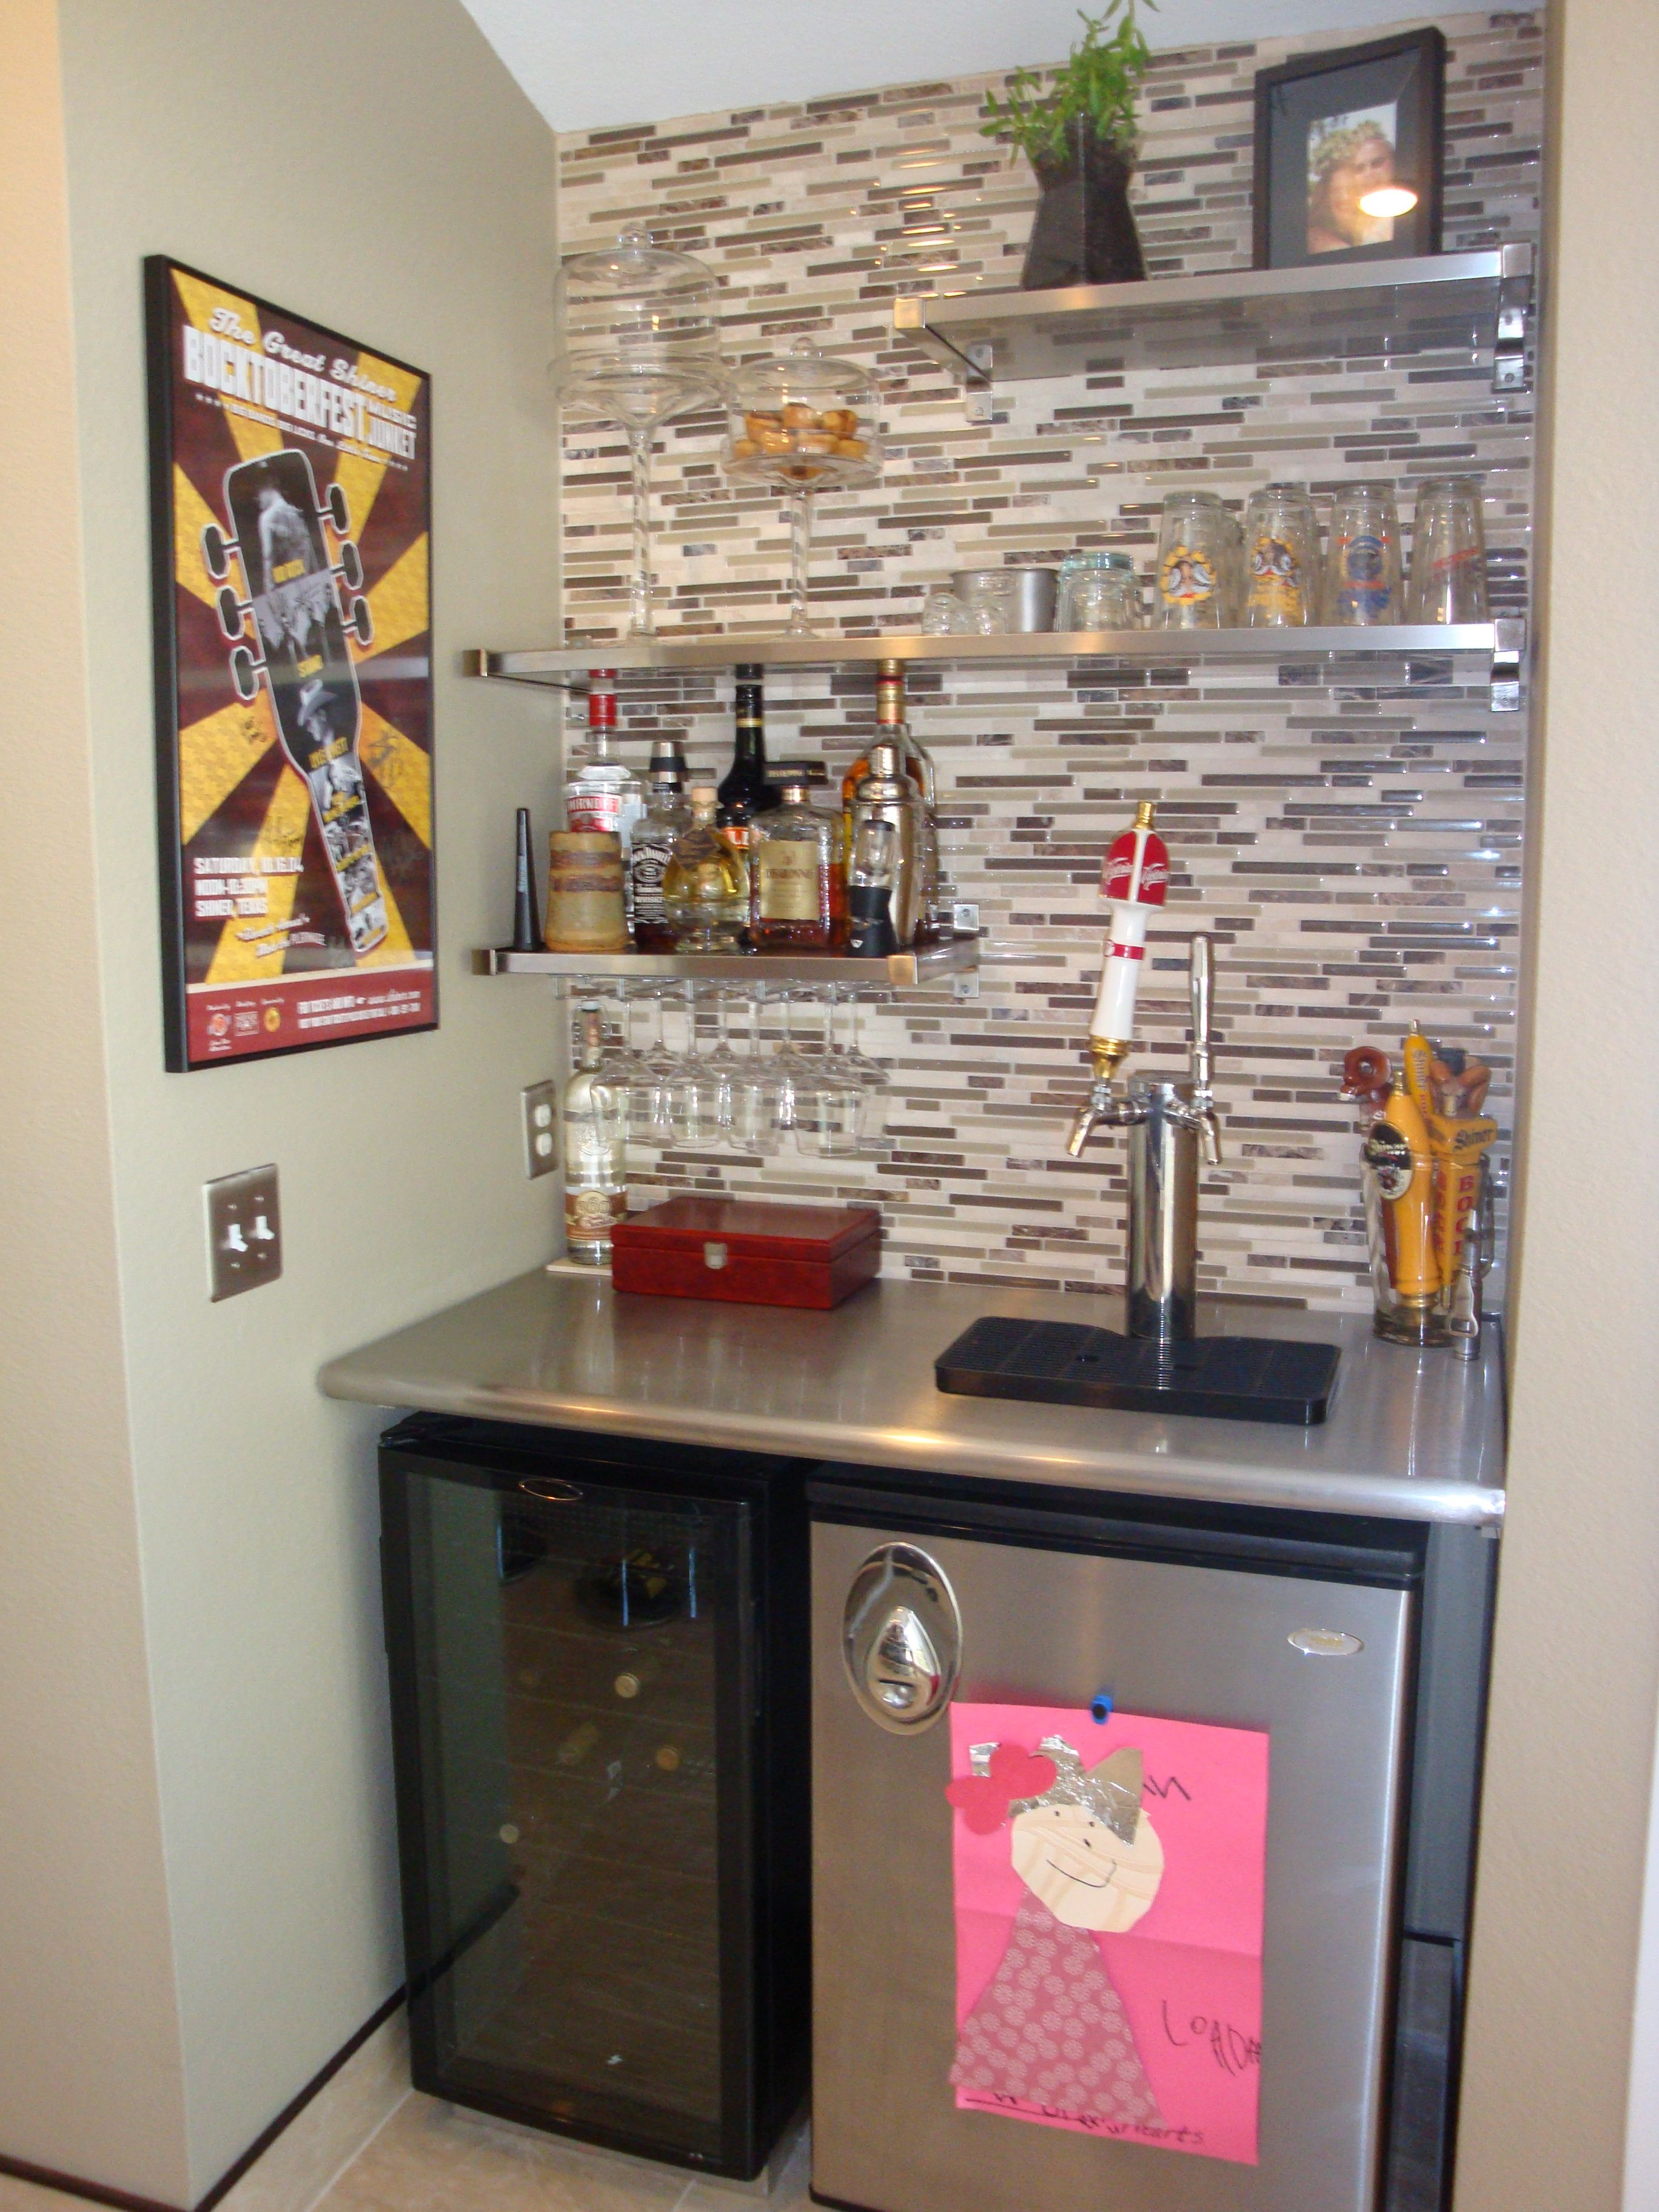 Heimkino schlafzimmer design-ideen the adult beverage center o sometimes it doubles as the